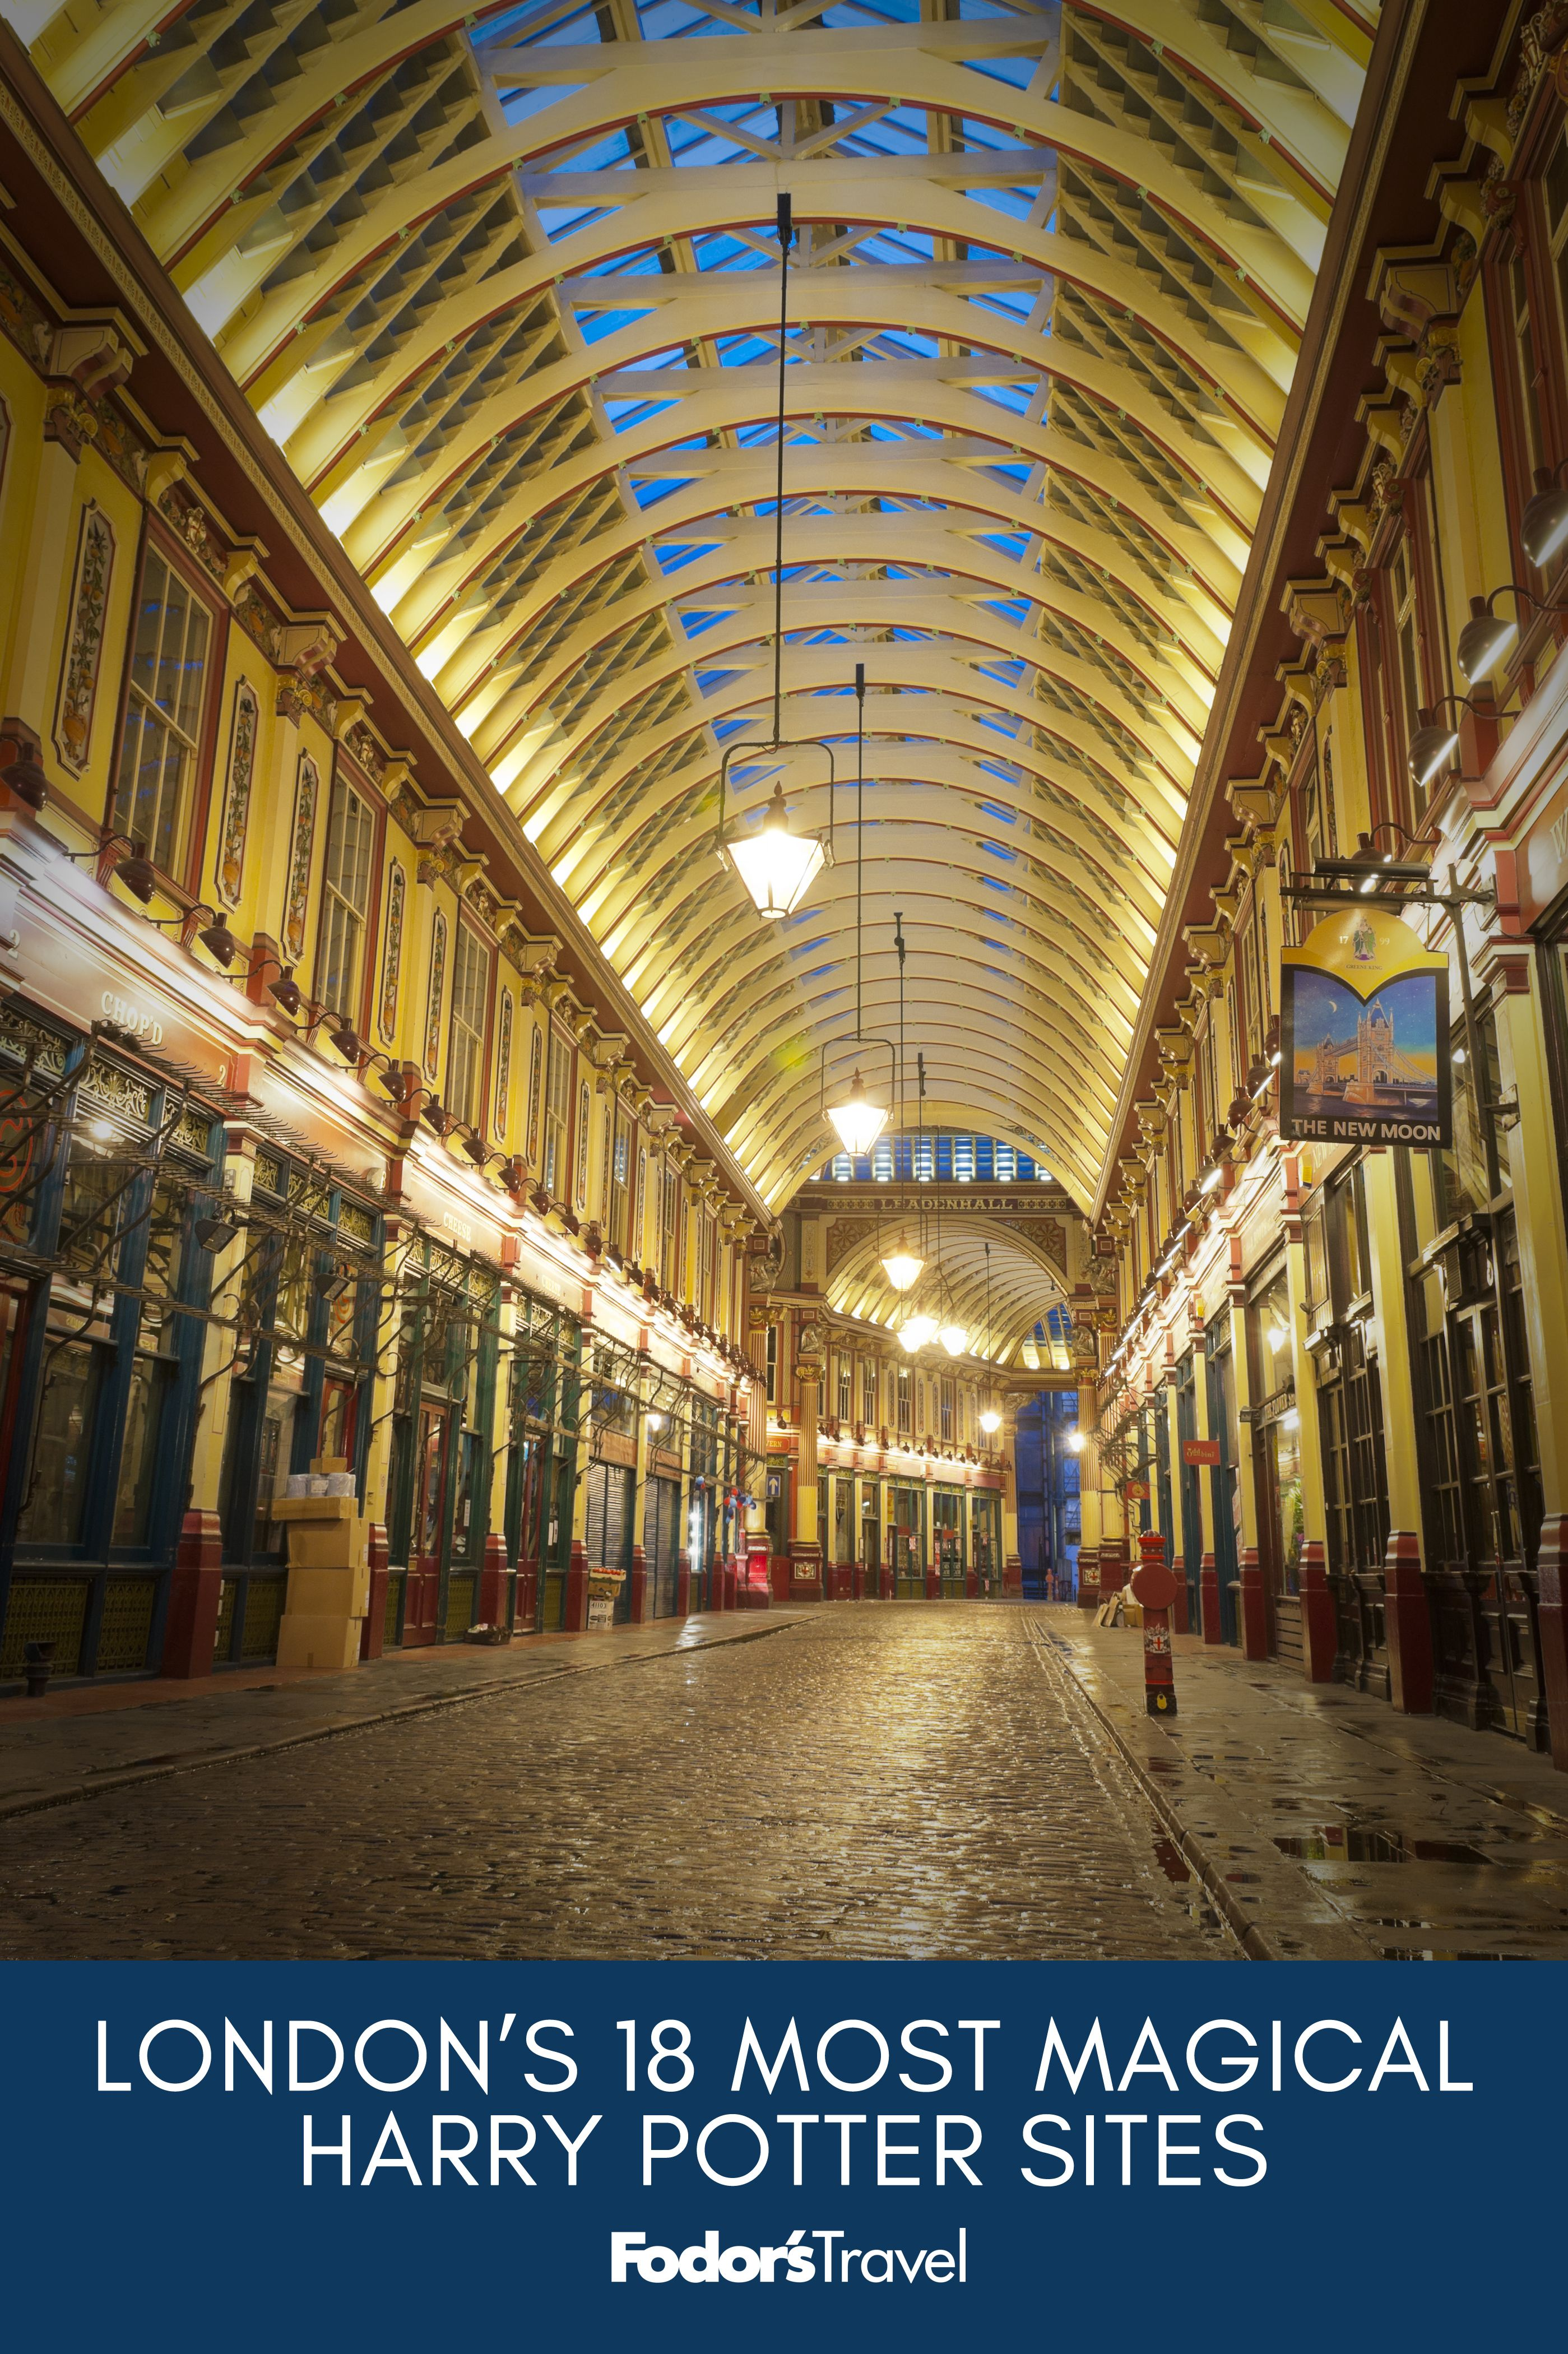 From the iconic Platform 9 ¾ to the lesser-known pedestrian streets, here are the top #HarryPotter sites in #London. #Travel